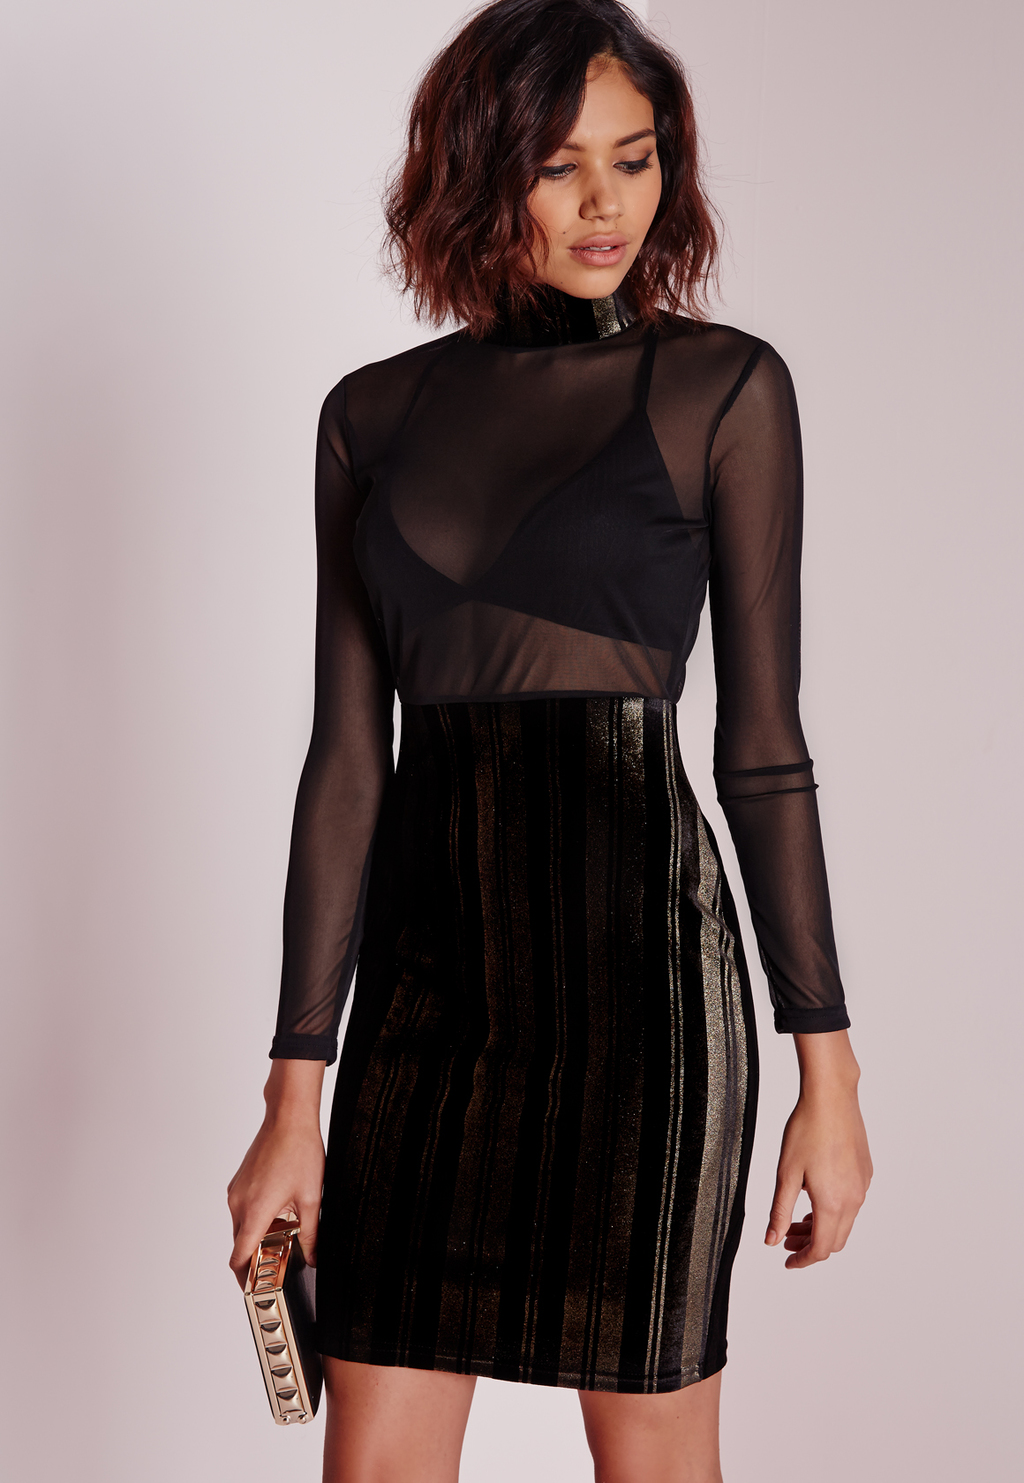 Foiled Mesh Midi Dress Black, Black - style: shift; length: mid thigh; fit: tailored/fitted; pattern: plain; neckline: high neck; predominant colour: black; occasions: evening; fibres: polyester/polyamide - mix; sleeve length: long sleeve; sleeve style: standard; pattern type: fabric; texture group: other - light to midweight; season: a/w 2015; wardrobe: event